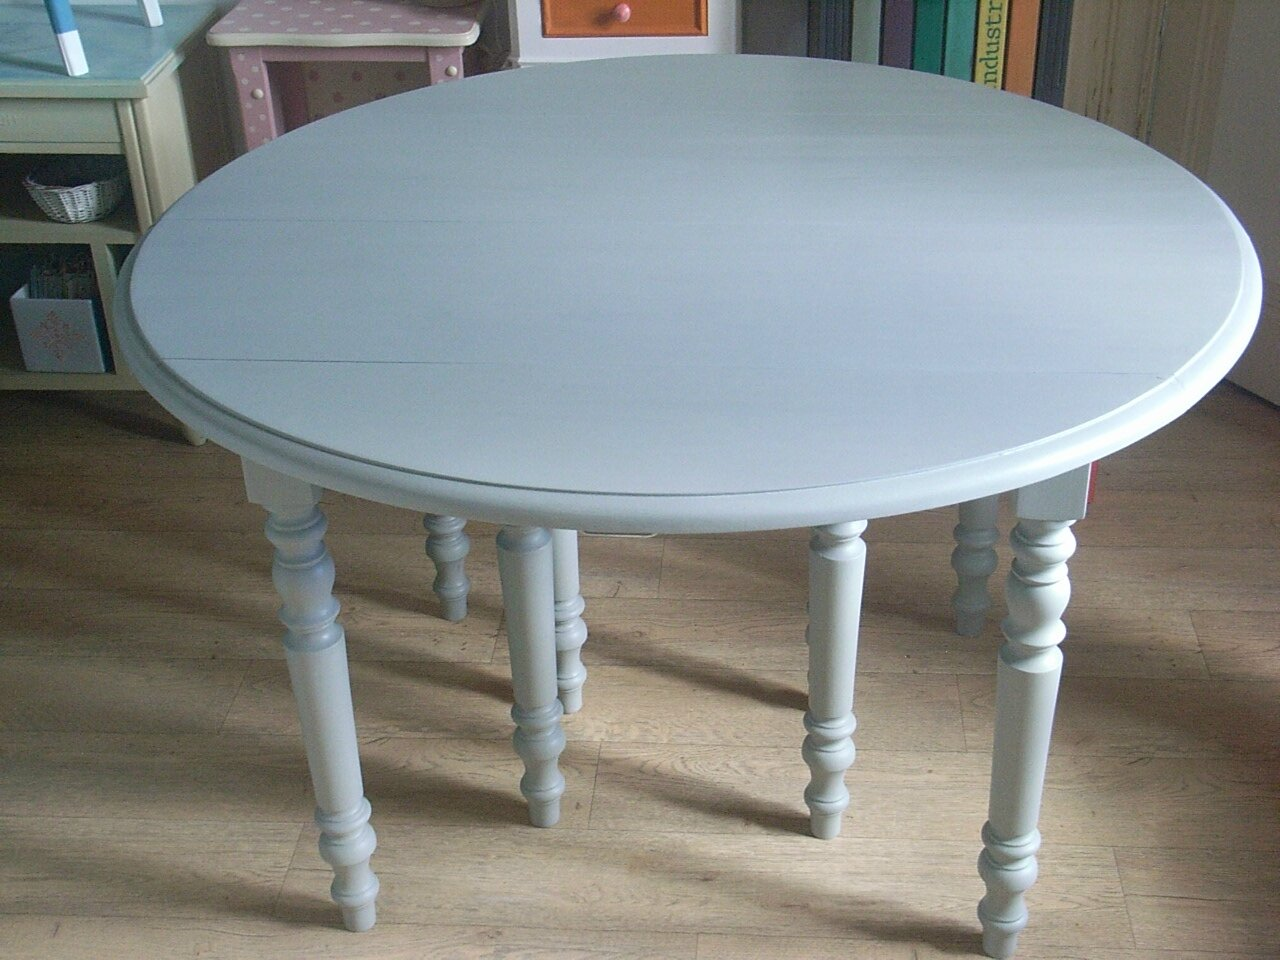 Table basse repeinte good fauteuil et table basse du for Peindre une table basse